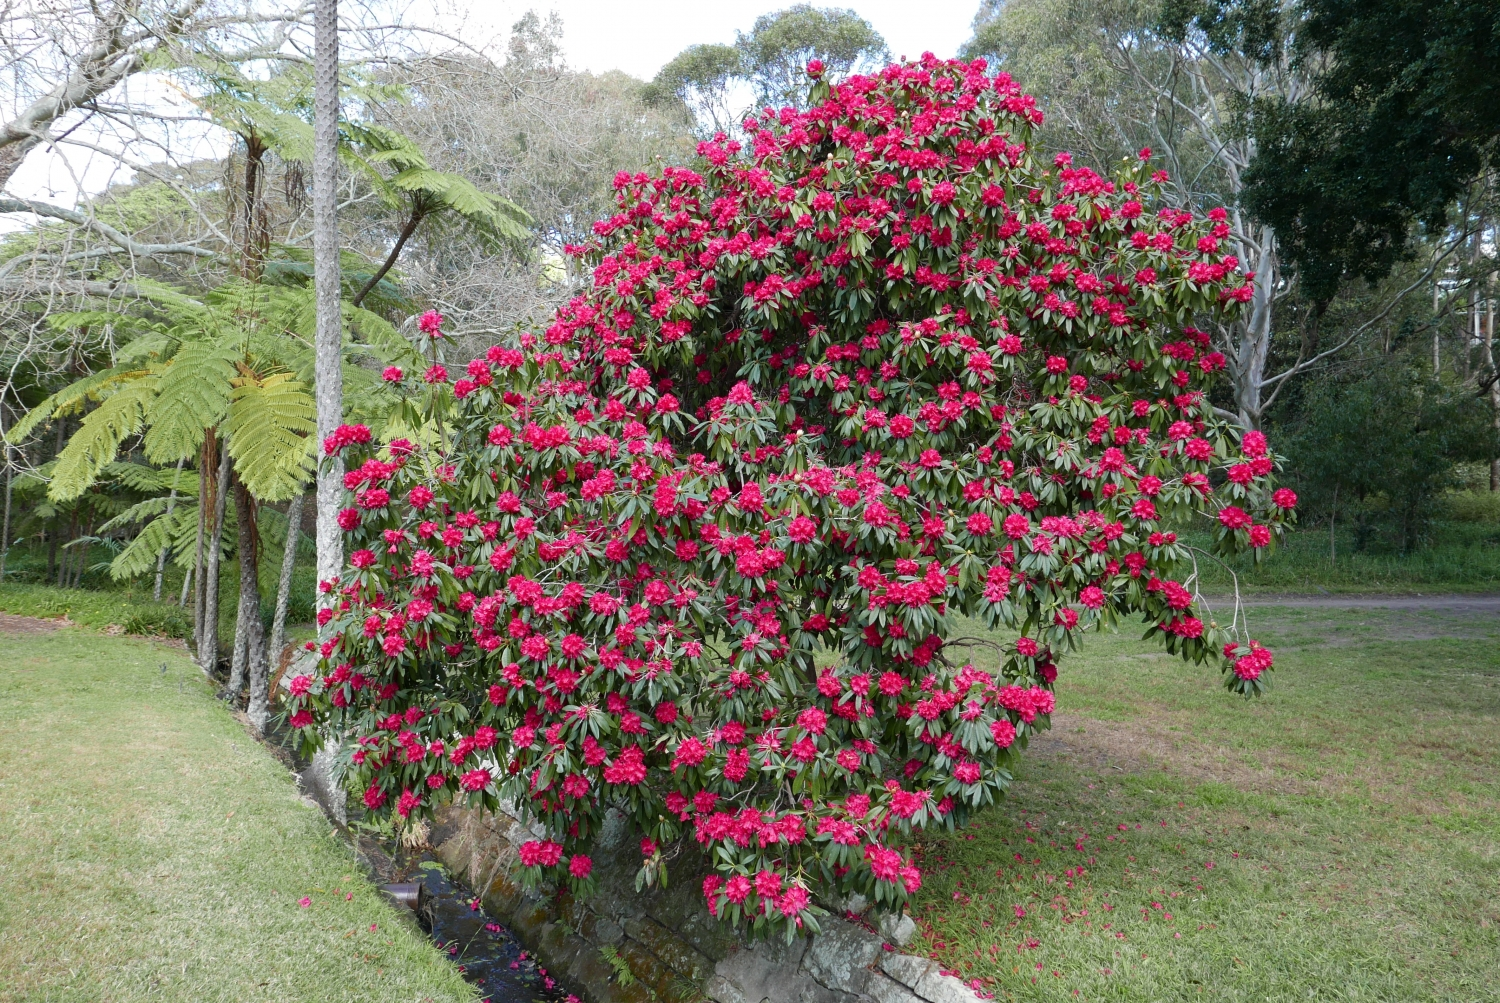 Rhododendron sp. alongside the creek at Vaucluse House